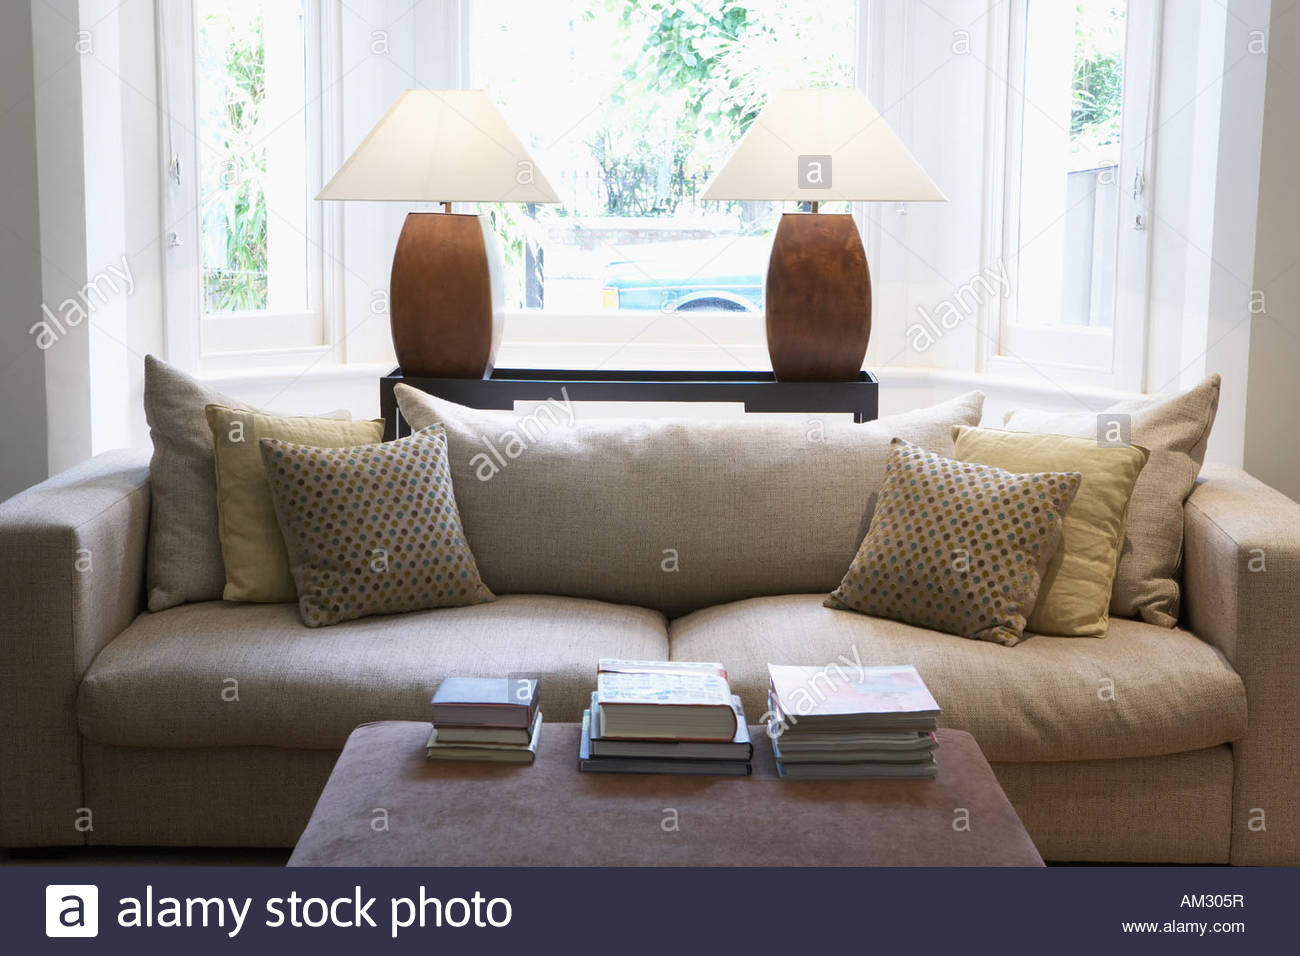 Empty living room with couch and coffee table - Stock Image